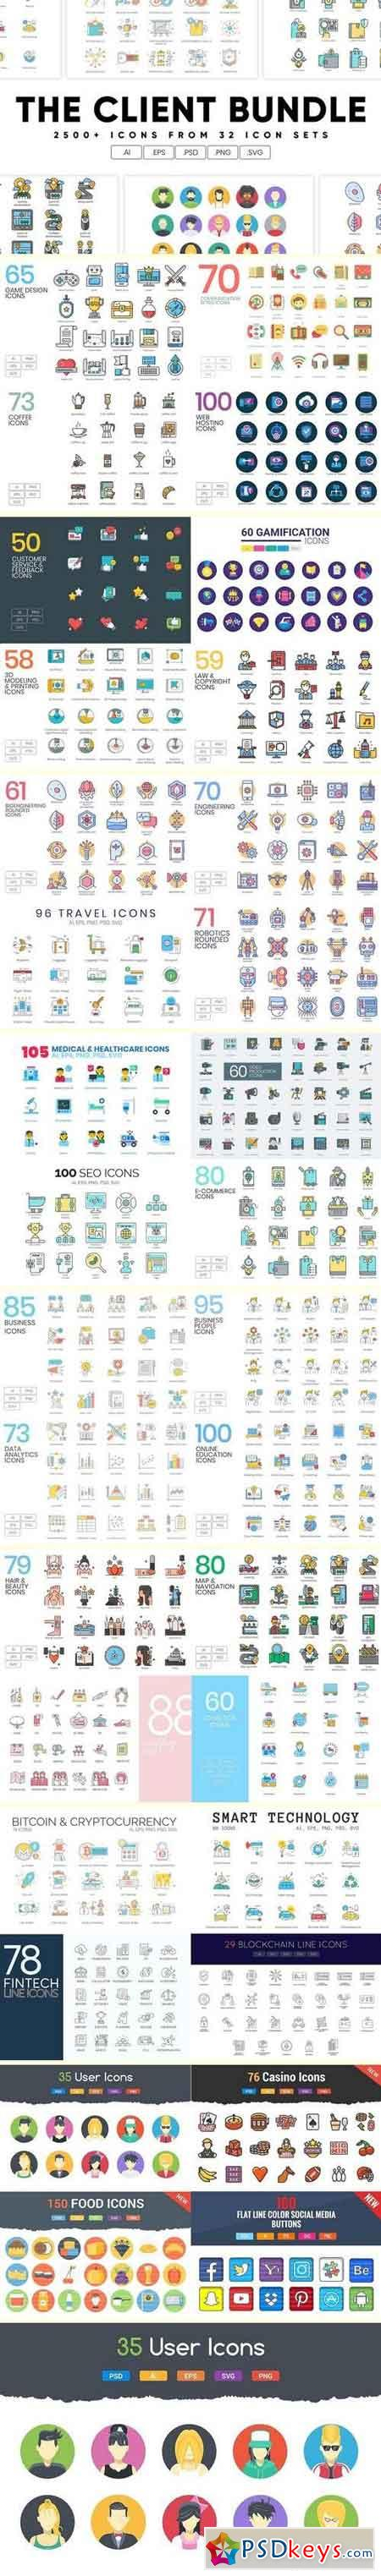 The Client Bundle 2,500+ Icons